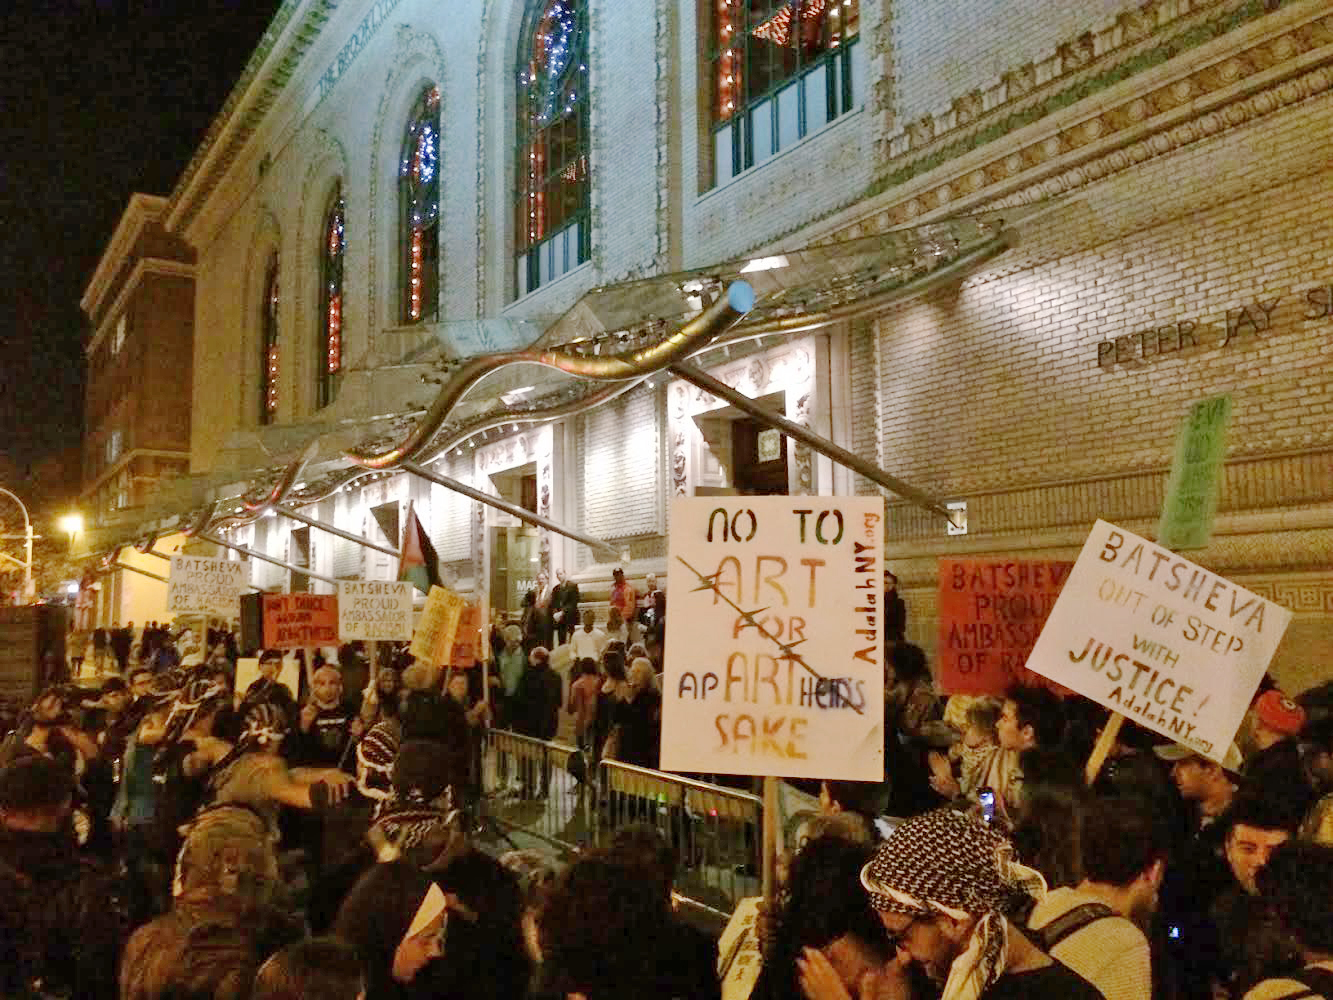 November 13 Boycott, Divestment, and Sanctions protest outside the premiere of Batsheva Dance Company's 'Sadeh21' at BAM (photo by the author for Hyperallergic)